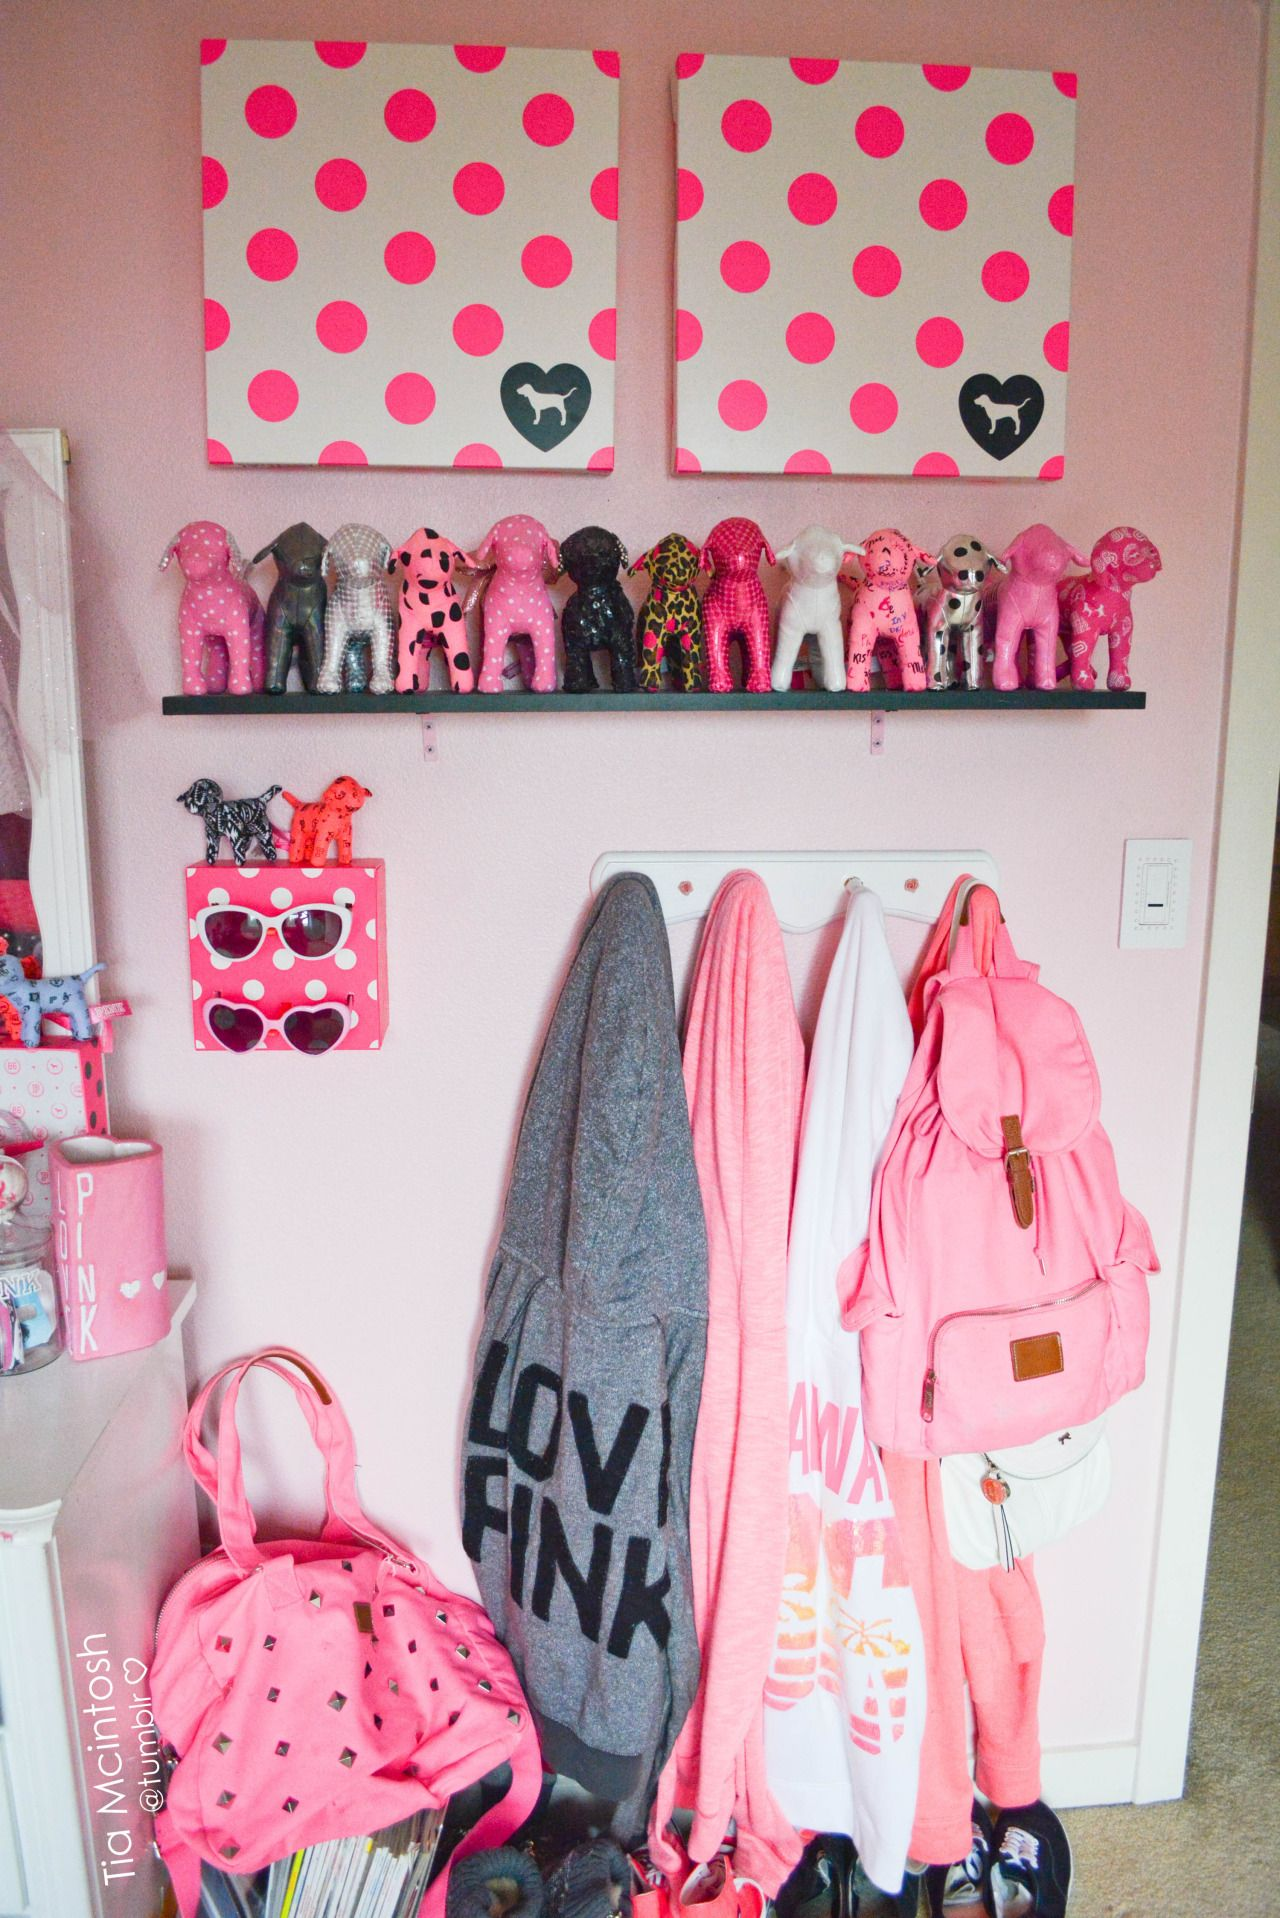 Ideas for Anna's room decor when she's a teenager, as that